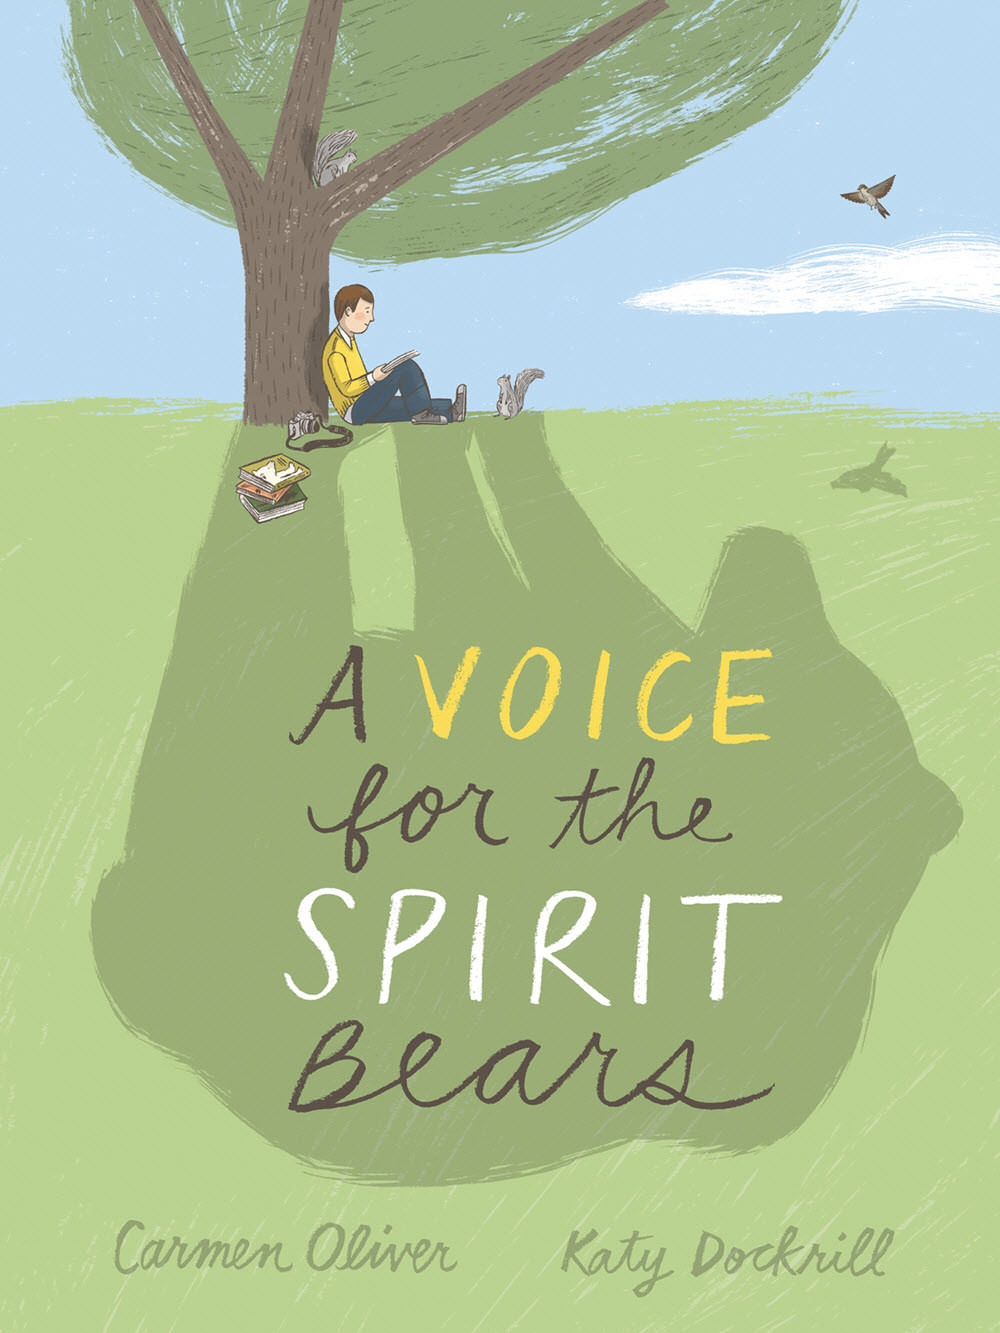 A Voice for the Spirit Bears - KD614